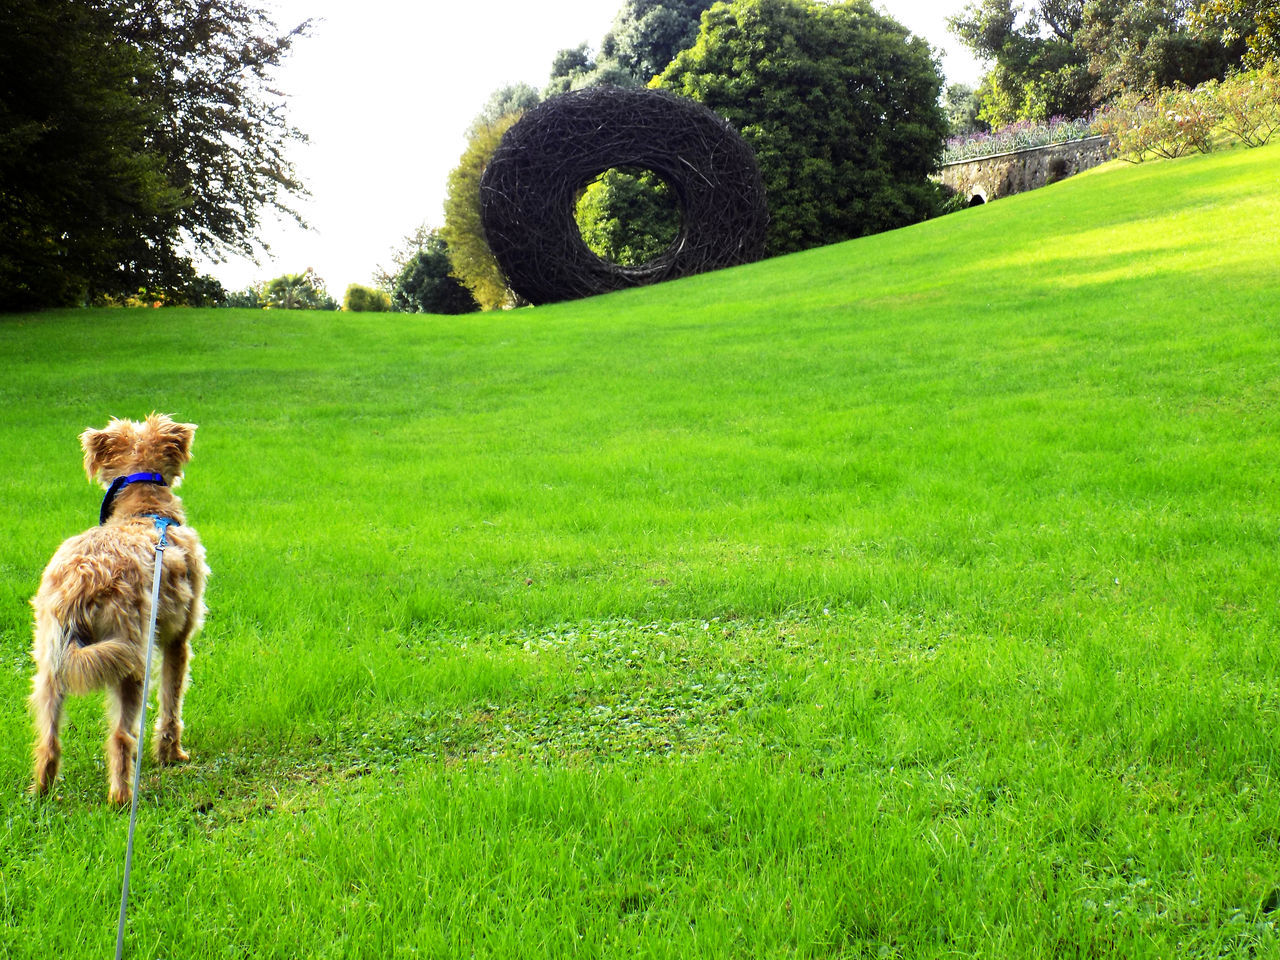 Animal Themes ArtWork Beauty In Nature Day Dog Dog At The Park Dog Love Dog On A Leash Domestic Animals Field Garden Grass Grassfield Green Color Growth Italy Mammal Nature No People One Animal Outdoors Park Pets Tree